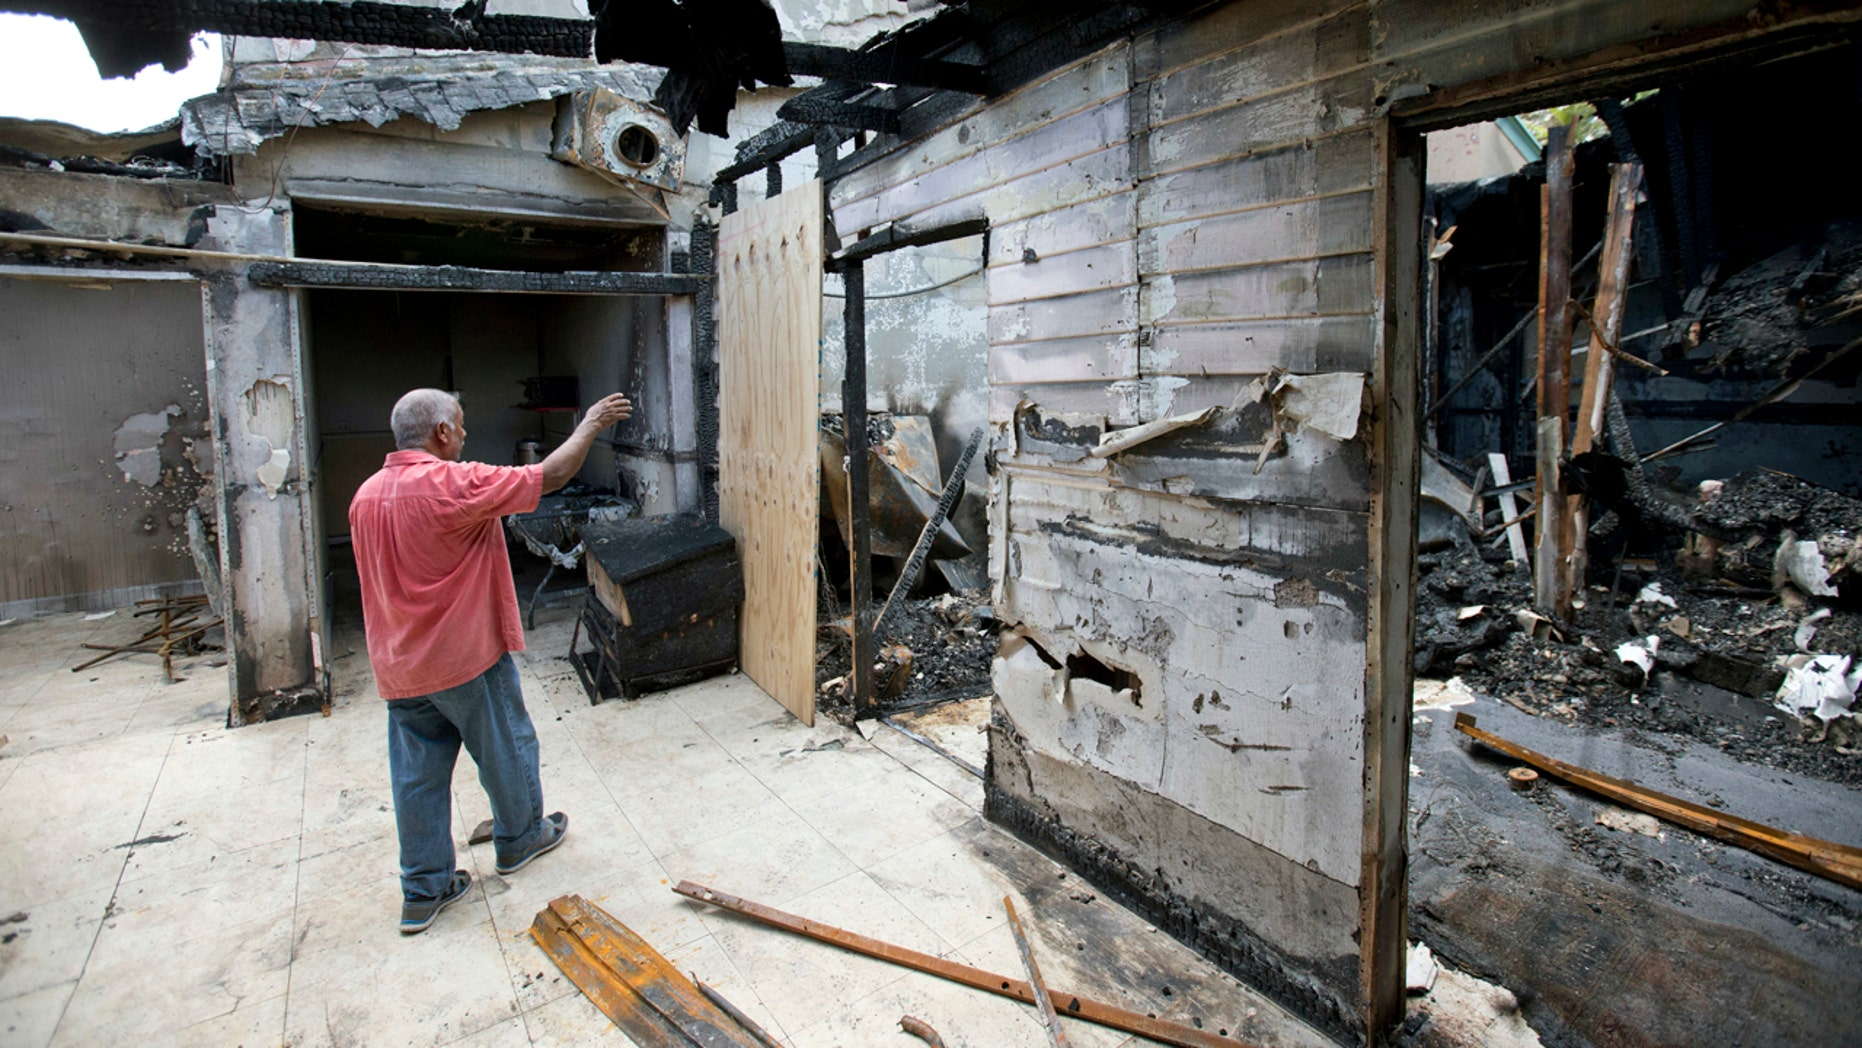 Sept. 15, 2016:  Farhad Khan, who has attended the Islamic Center of Fort Pierce for more than seven years, shows members of the media its charred remains, in Fort Pierce, Fla.